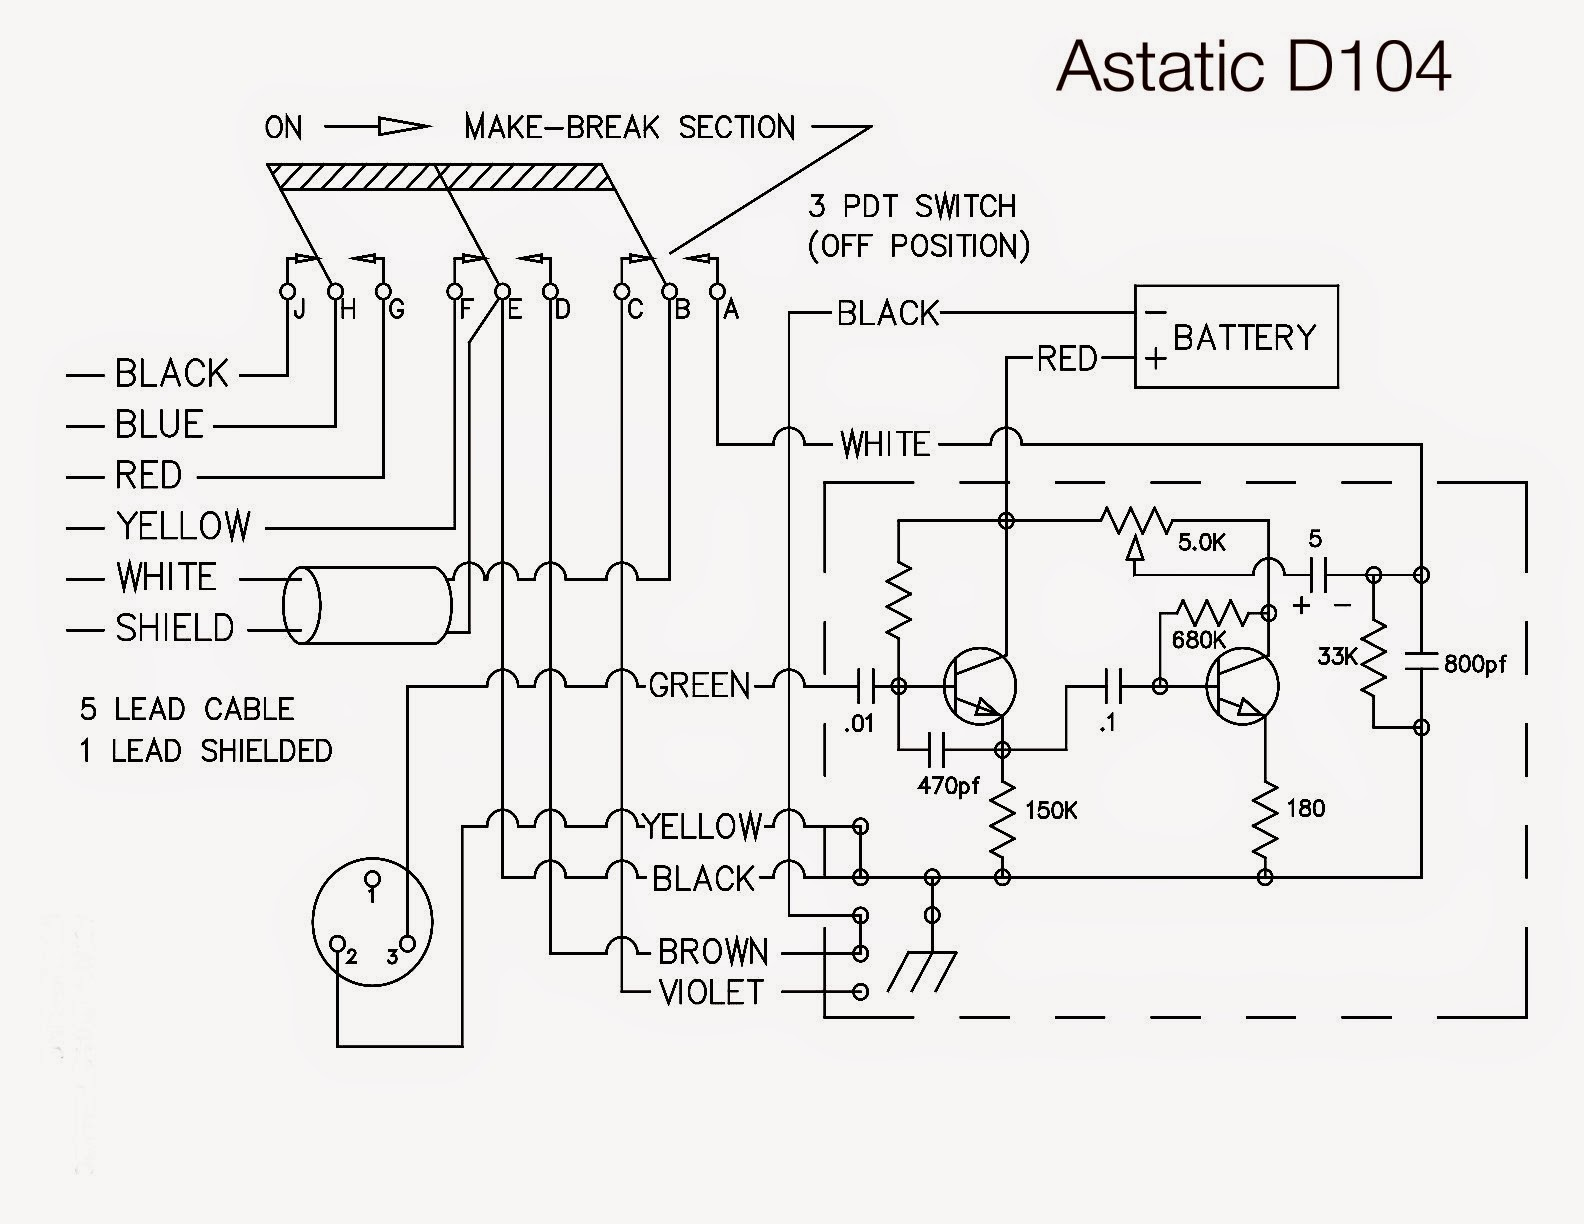 astatic mic wiring diagram and then astatic d 104 microphone wiring diagram in addition astatic silver eagle wiring diagram as well as astatic echo board  [ 1584 x 1224 Pixel ]